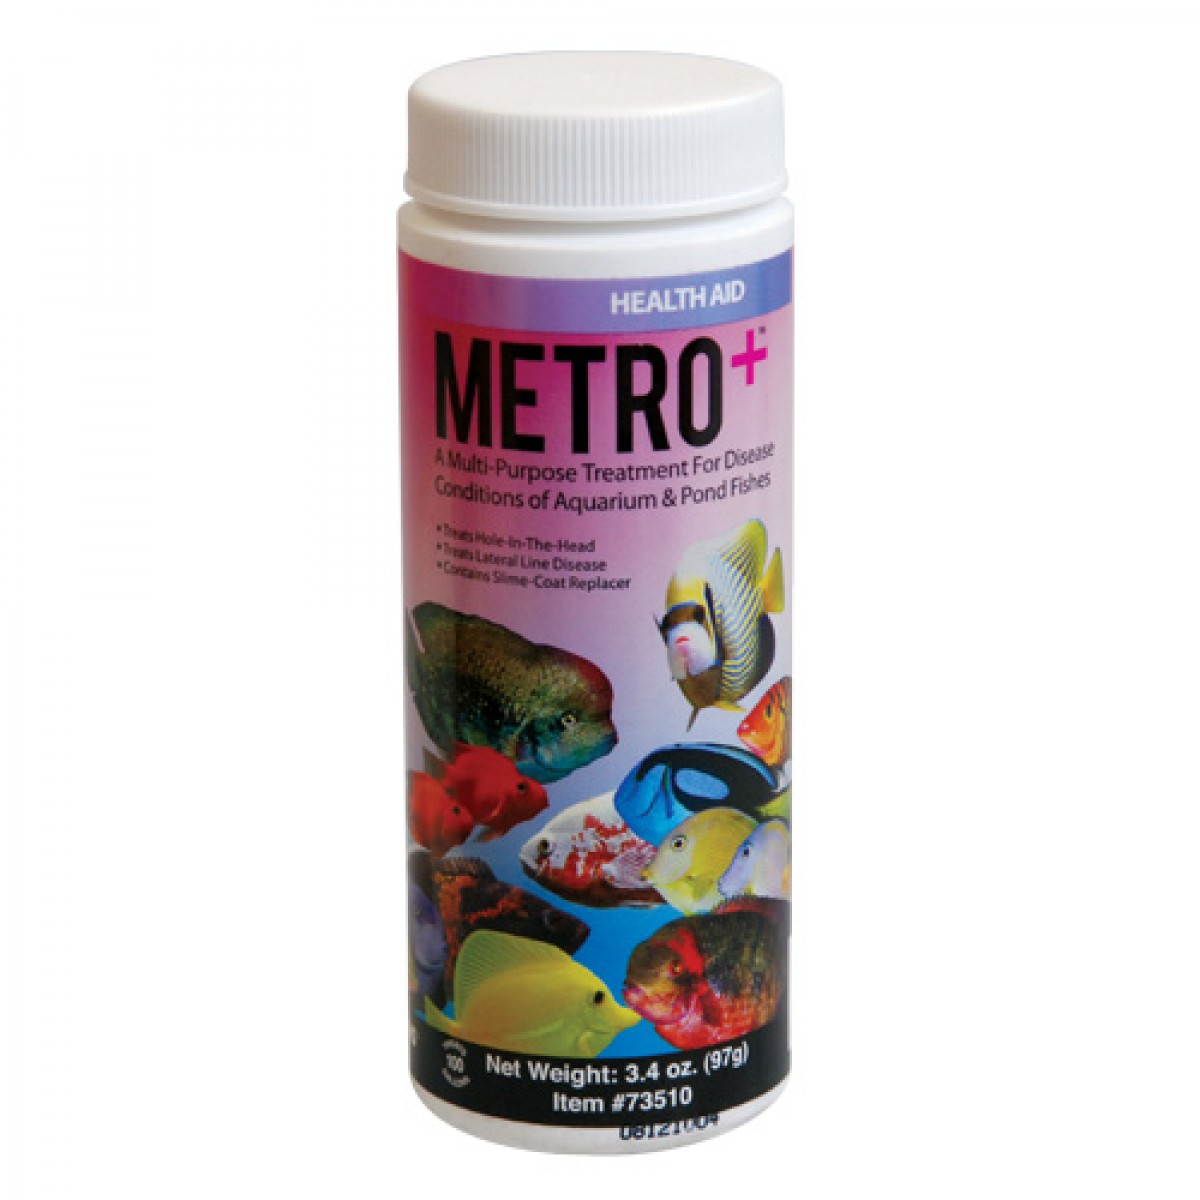 Hikari metro 3 5 fl oz for Fish antibiotics walmart